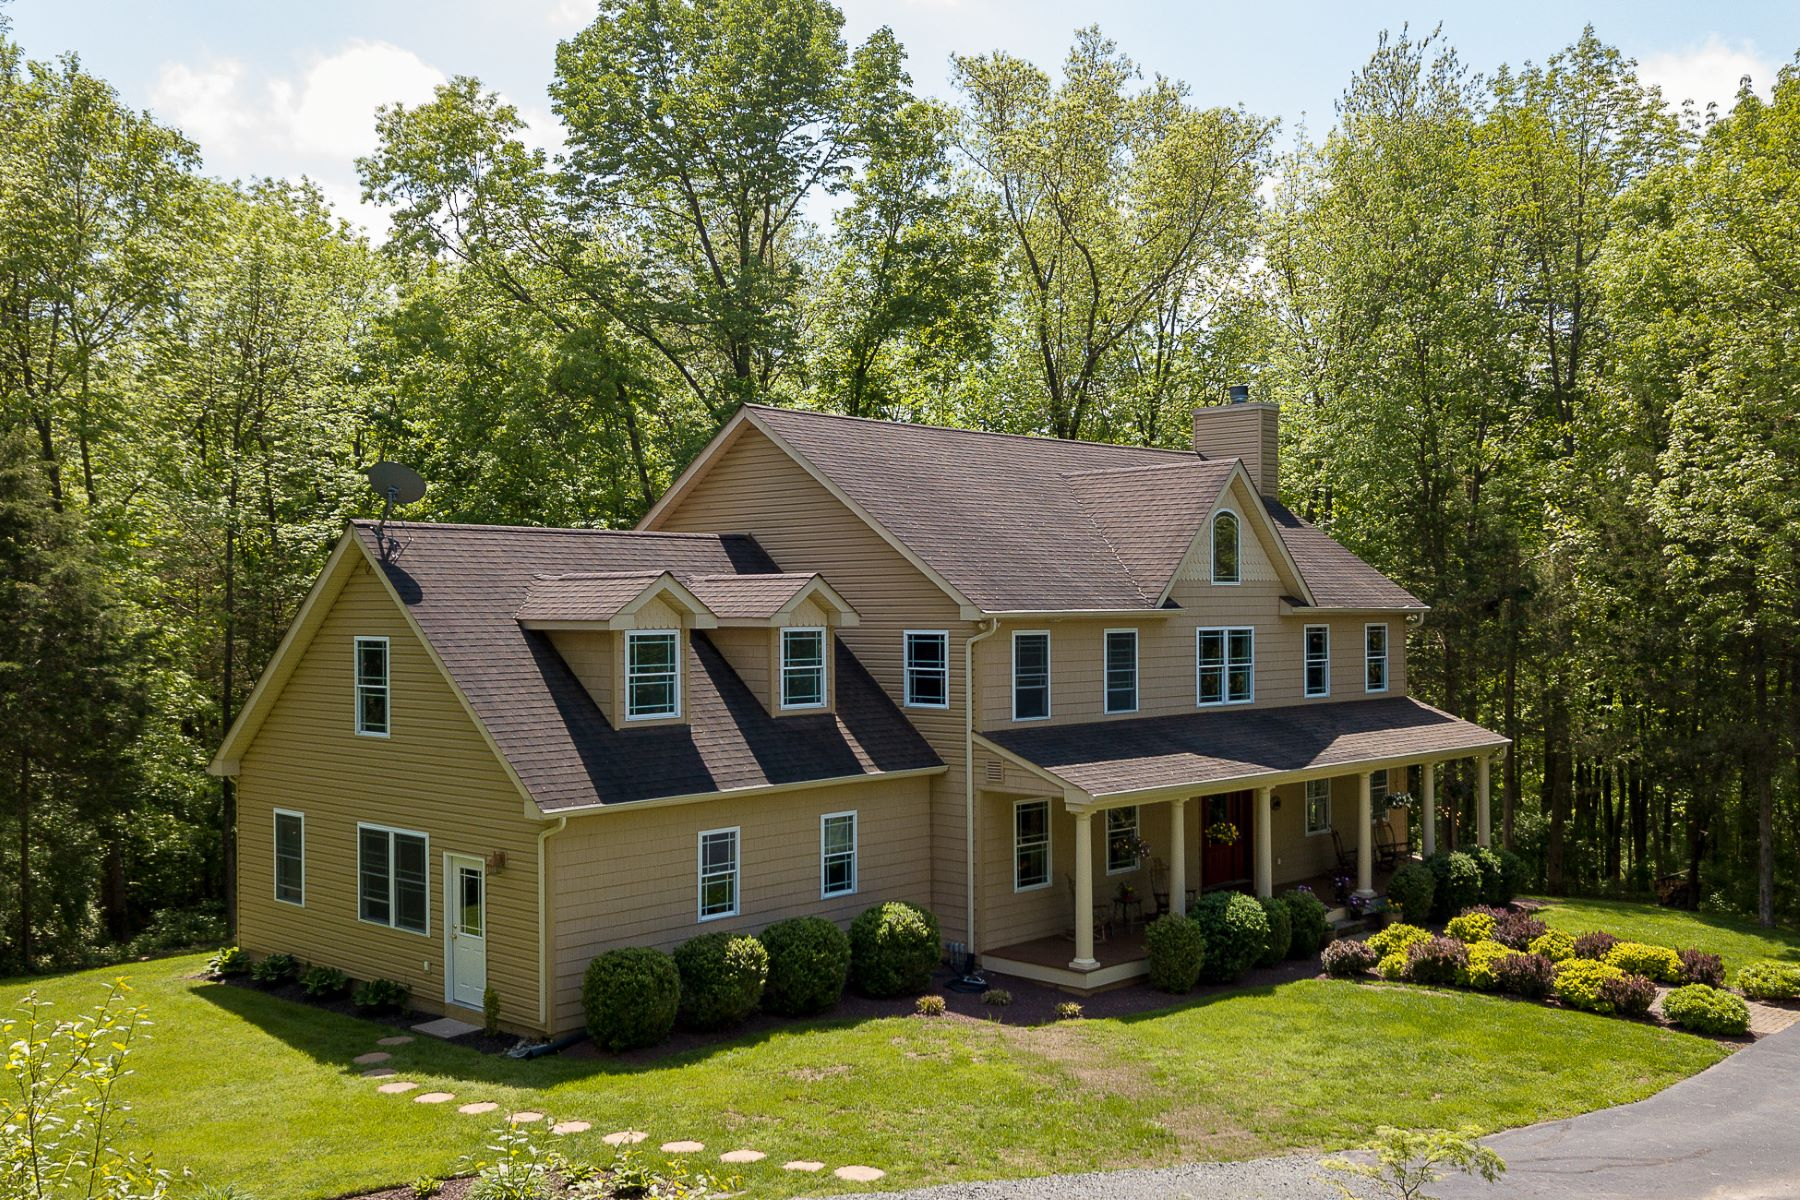 Additional photo for property listing at A Builder's Own Home, Surrounded By Nature 23 Lake Drive, Lambertville, New Jersey 08530 United States